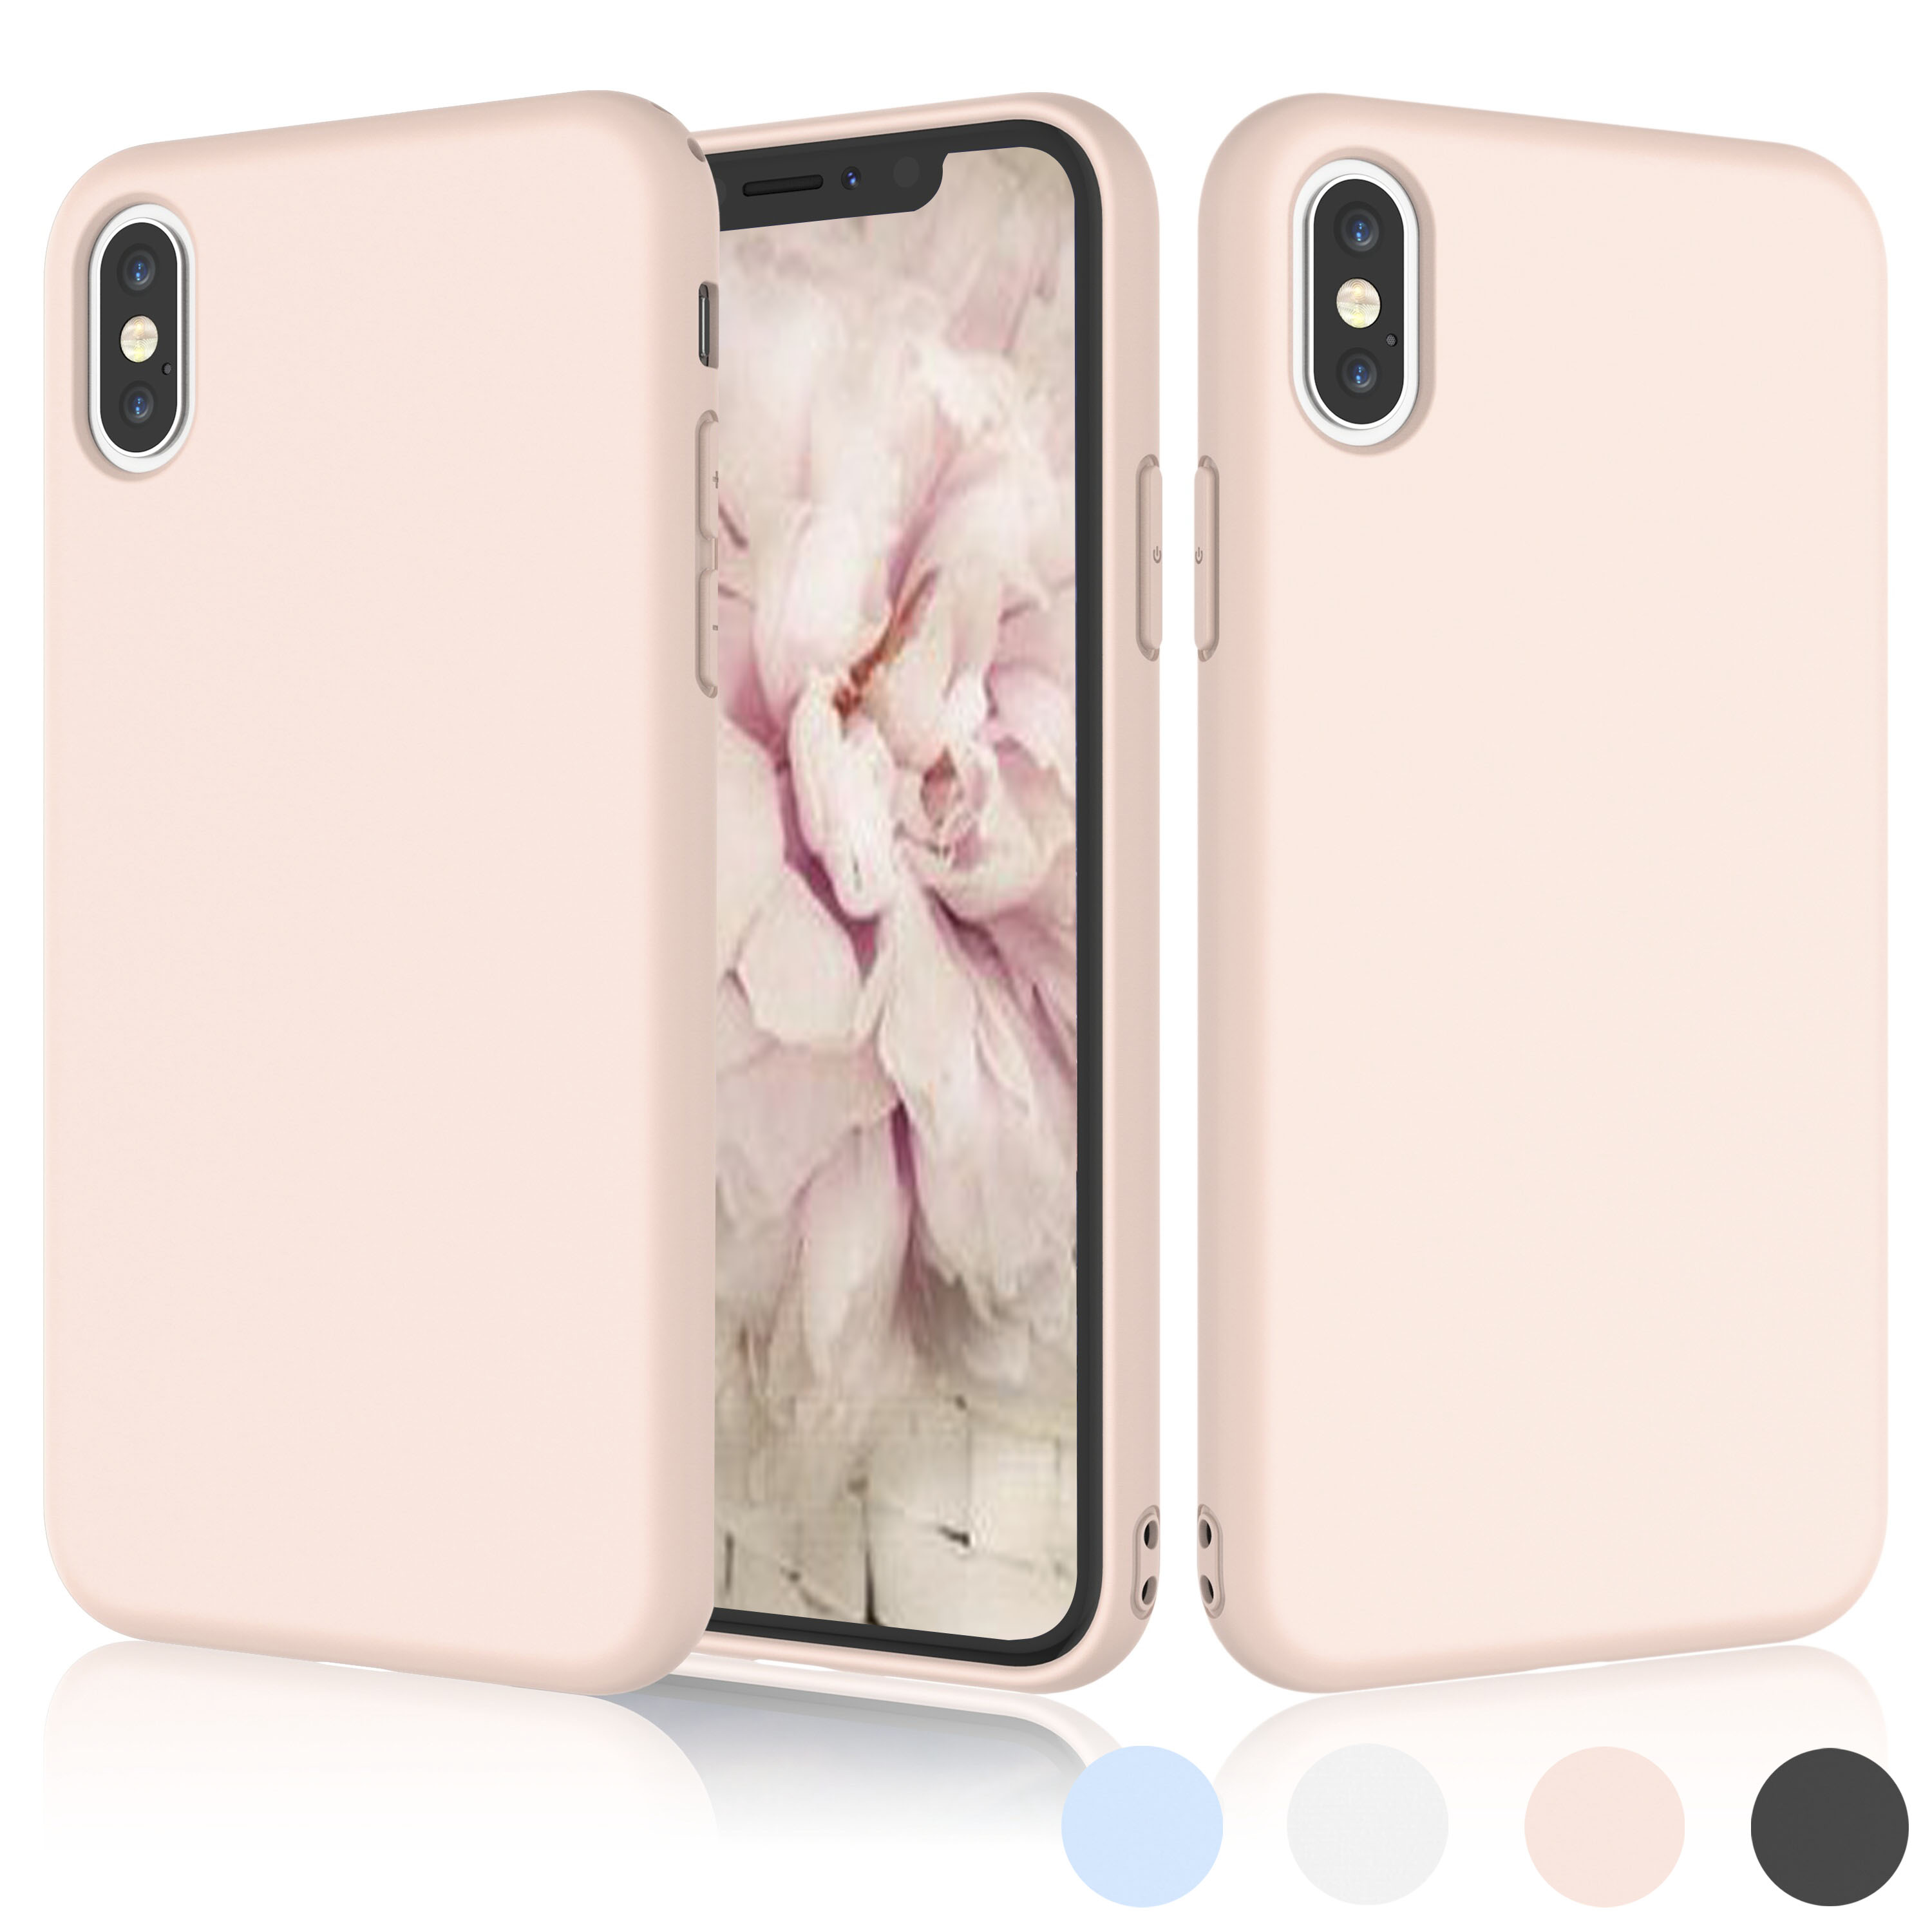 iPhone X Case, iPhone X Case For Girls, iPhone 10 Case, Njjex Matte Charming Colorful Slim Soft TPU Bumper Case Cover For Apple iPhone X 2017 Release -Pink